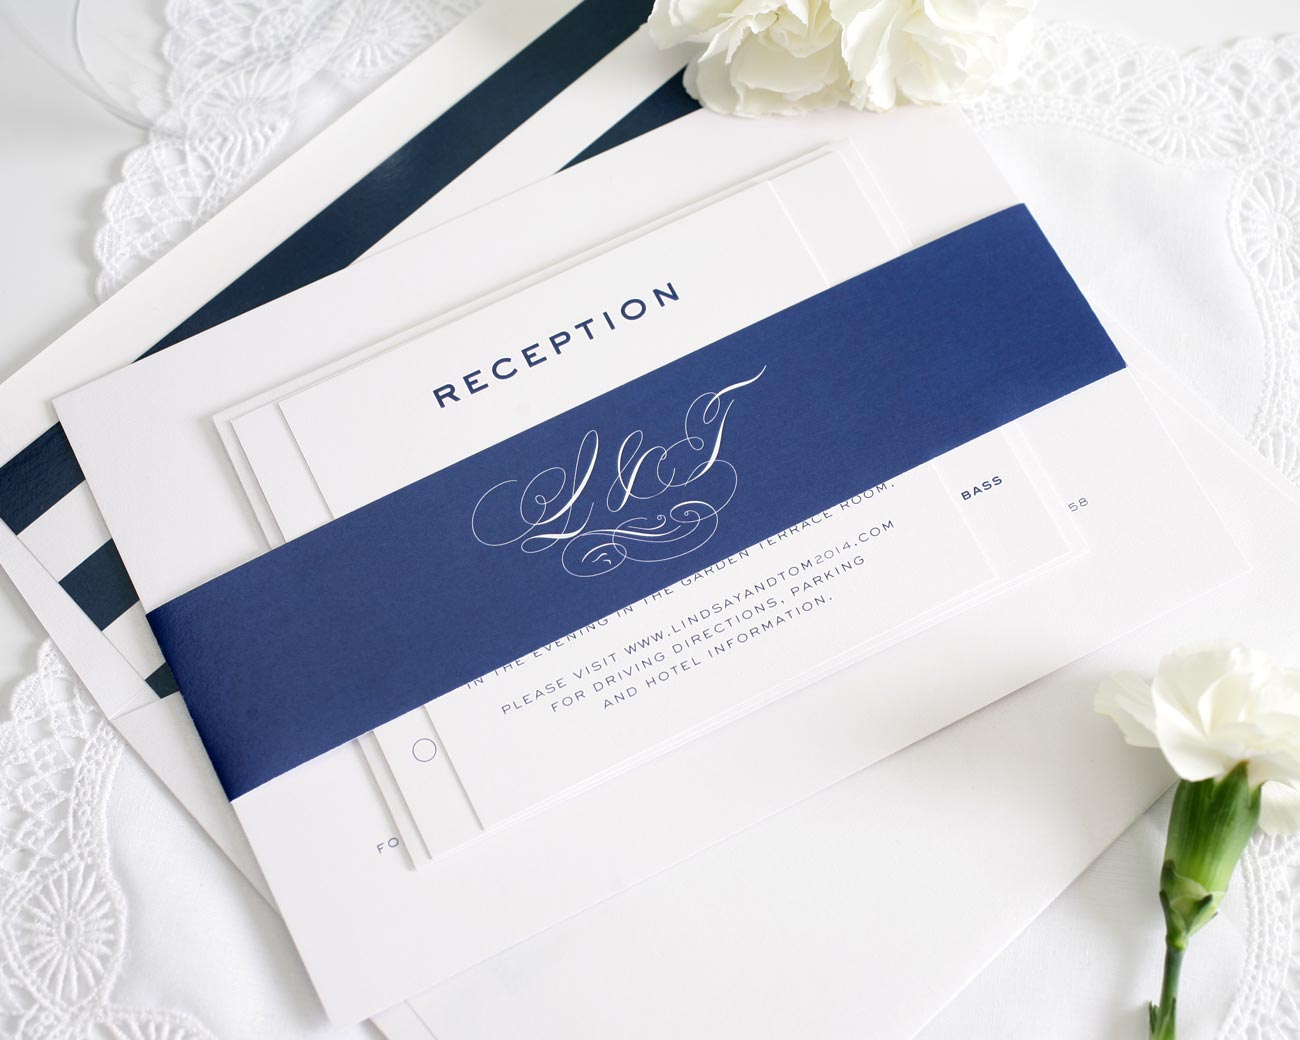 Vintage wedding invitations with navy accents